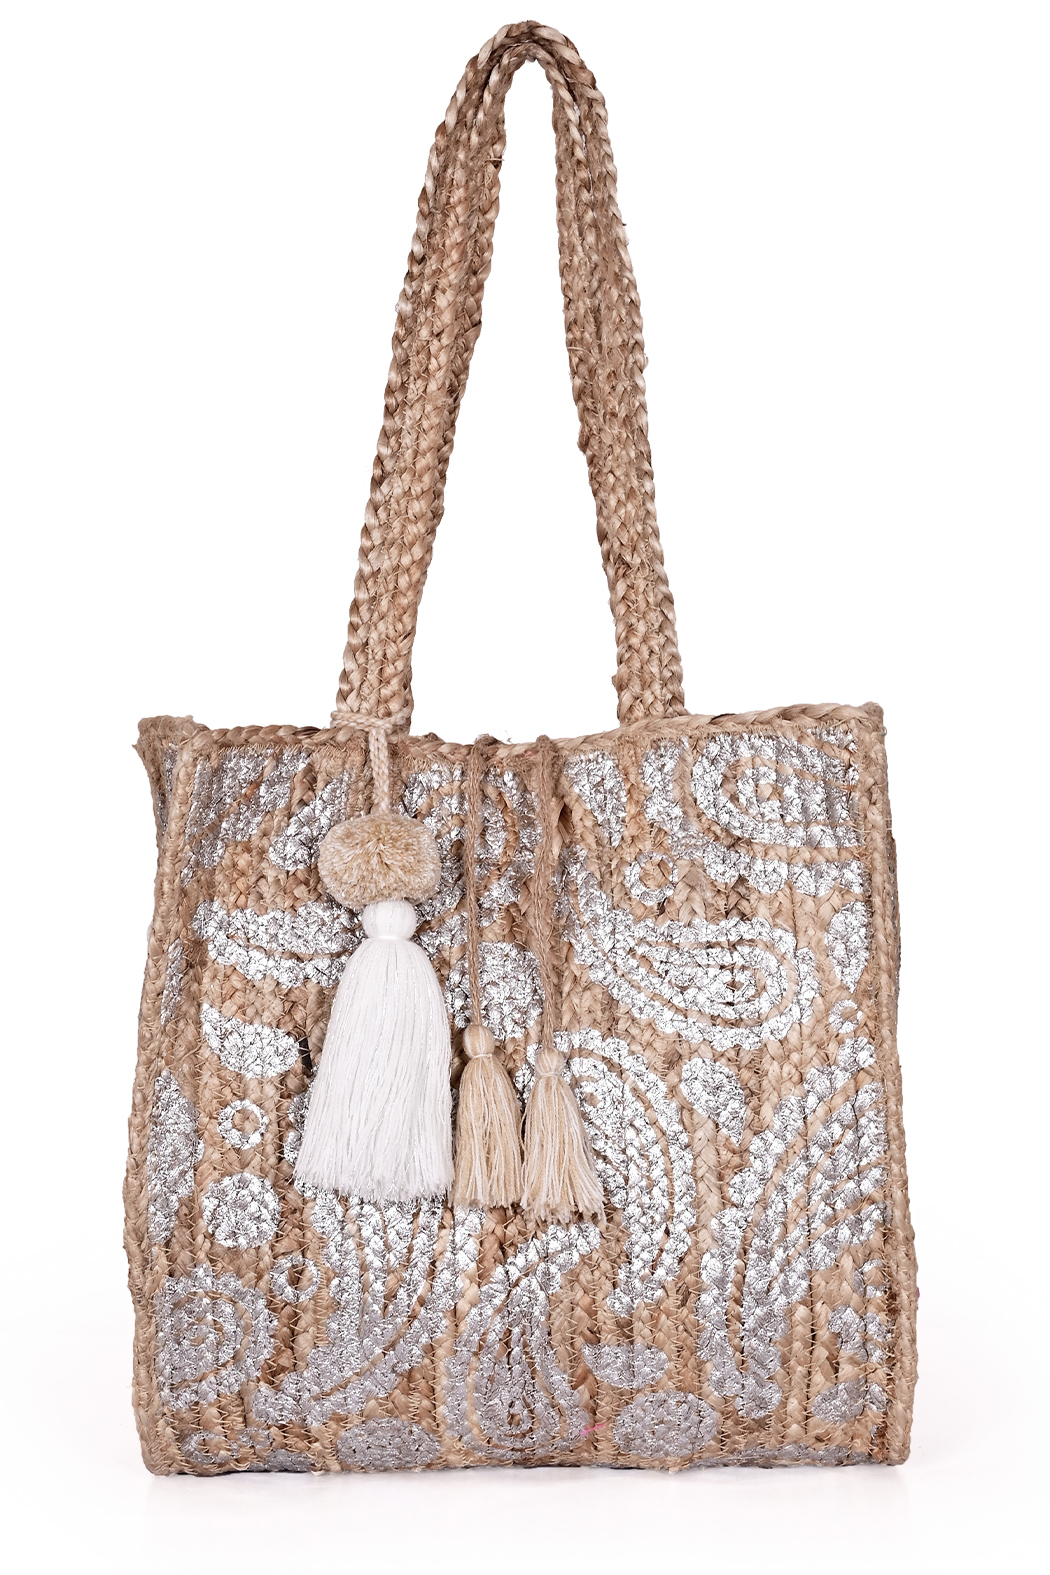 America & Beyond Boho-Mia Paisley Jute Beach Tote - Front Cropped Image